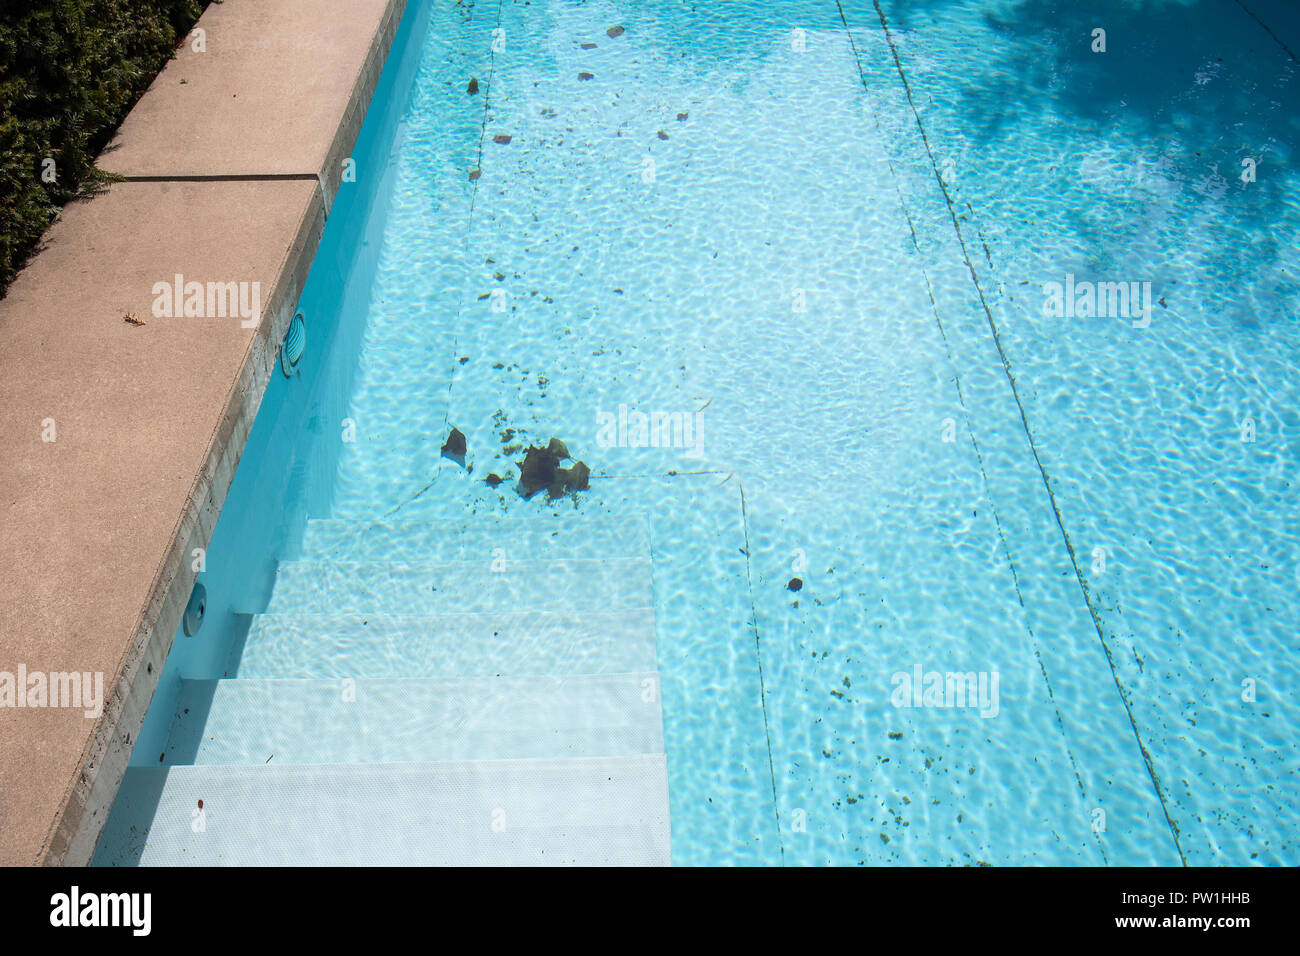 Dirty swimming pool which need to be cleaned close-up - Stock Image